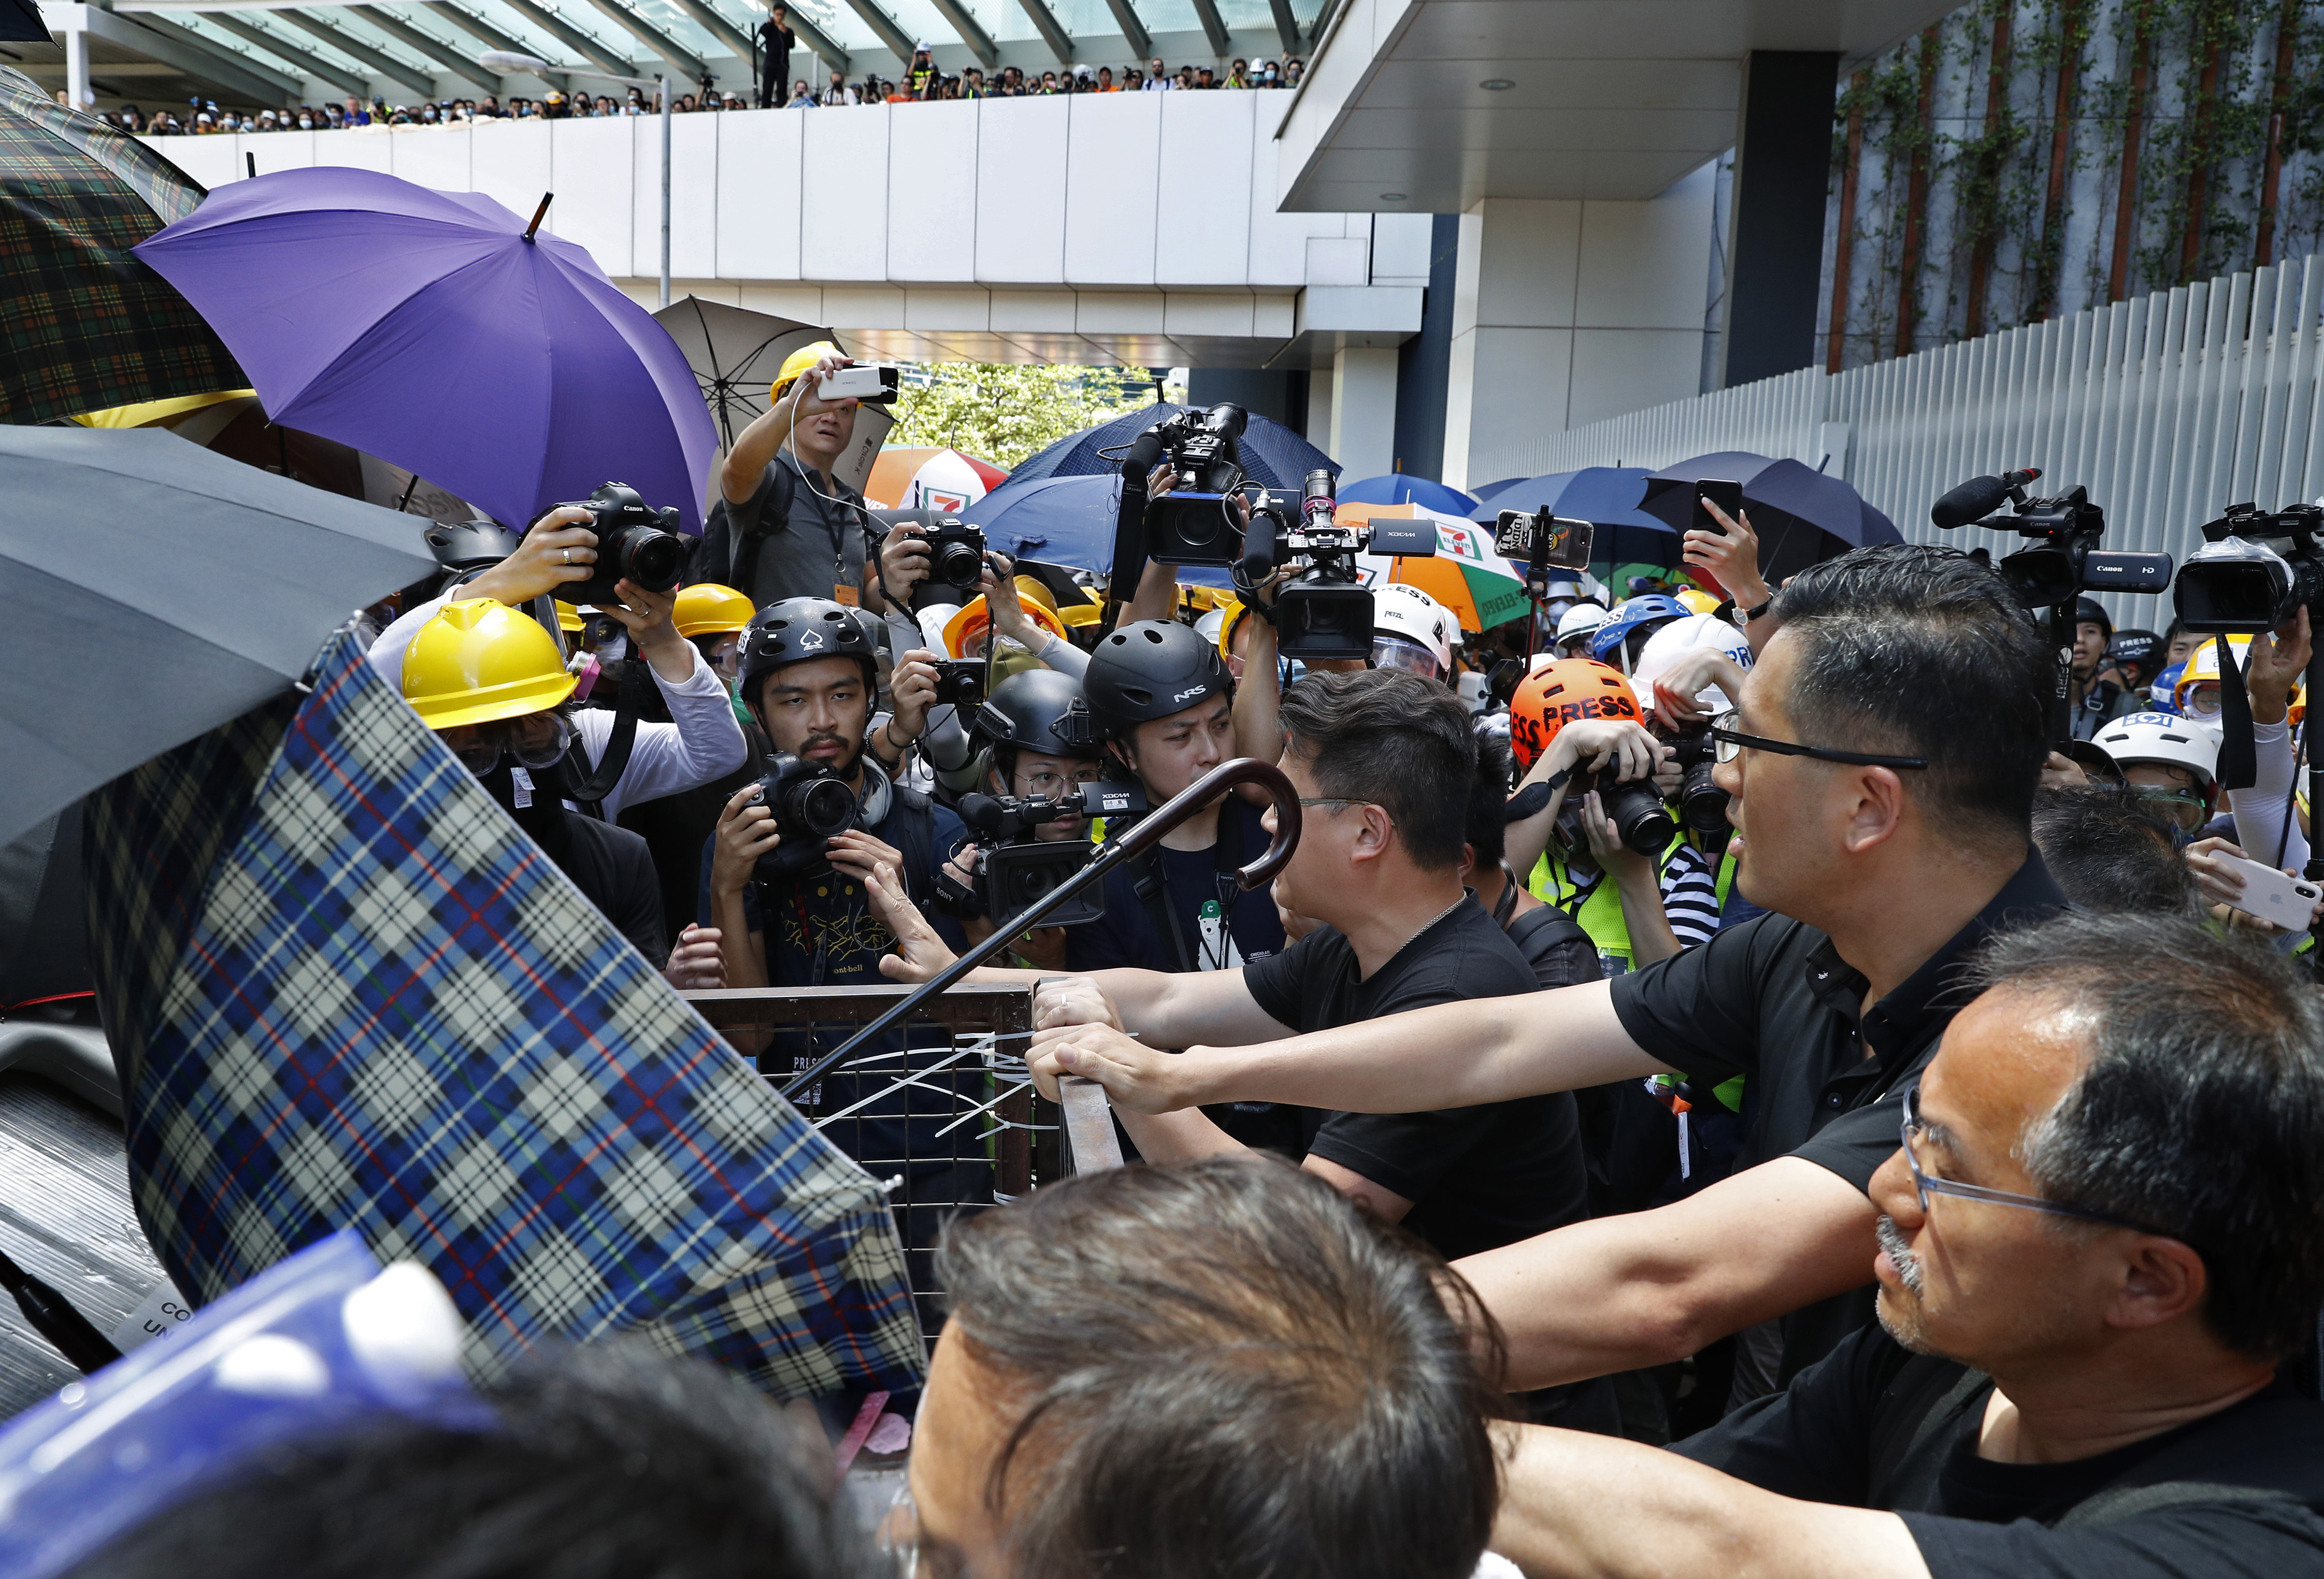 Hong Kong lawmaker: China may boost pressure after violence